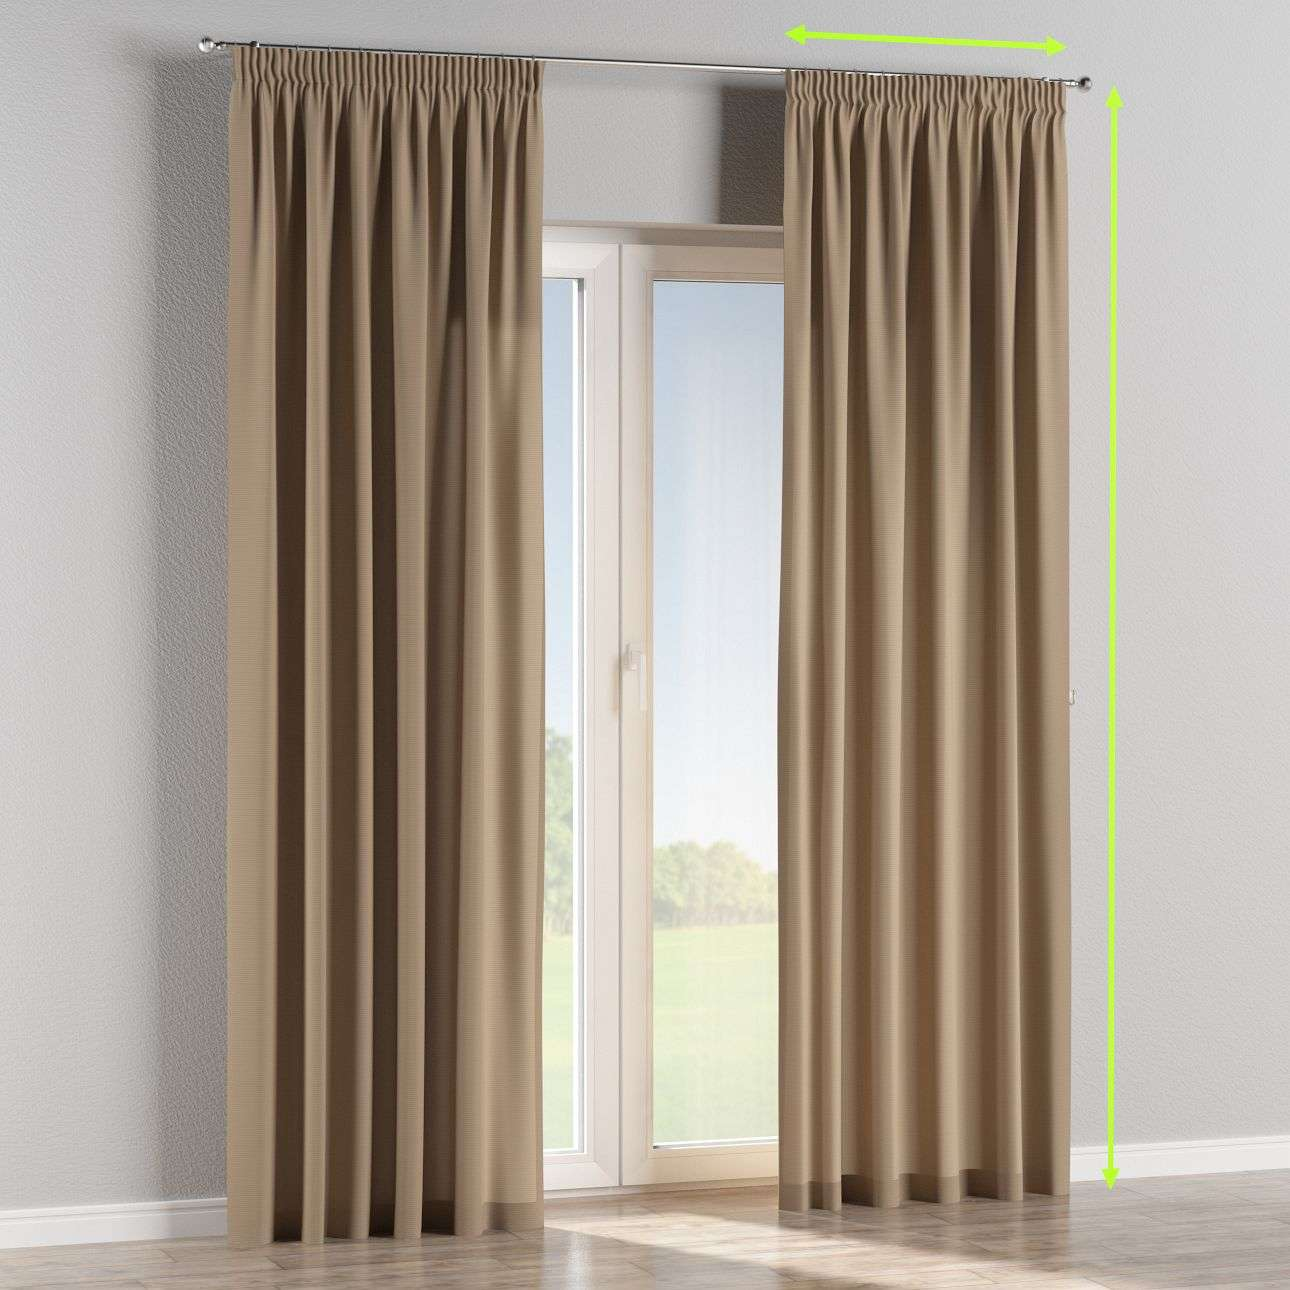 Pencil pleat lined curtains in collection Cotton Panama, fabric: 702-28